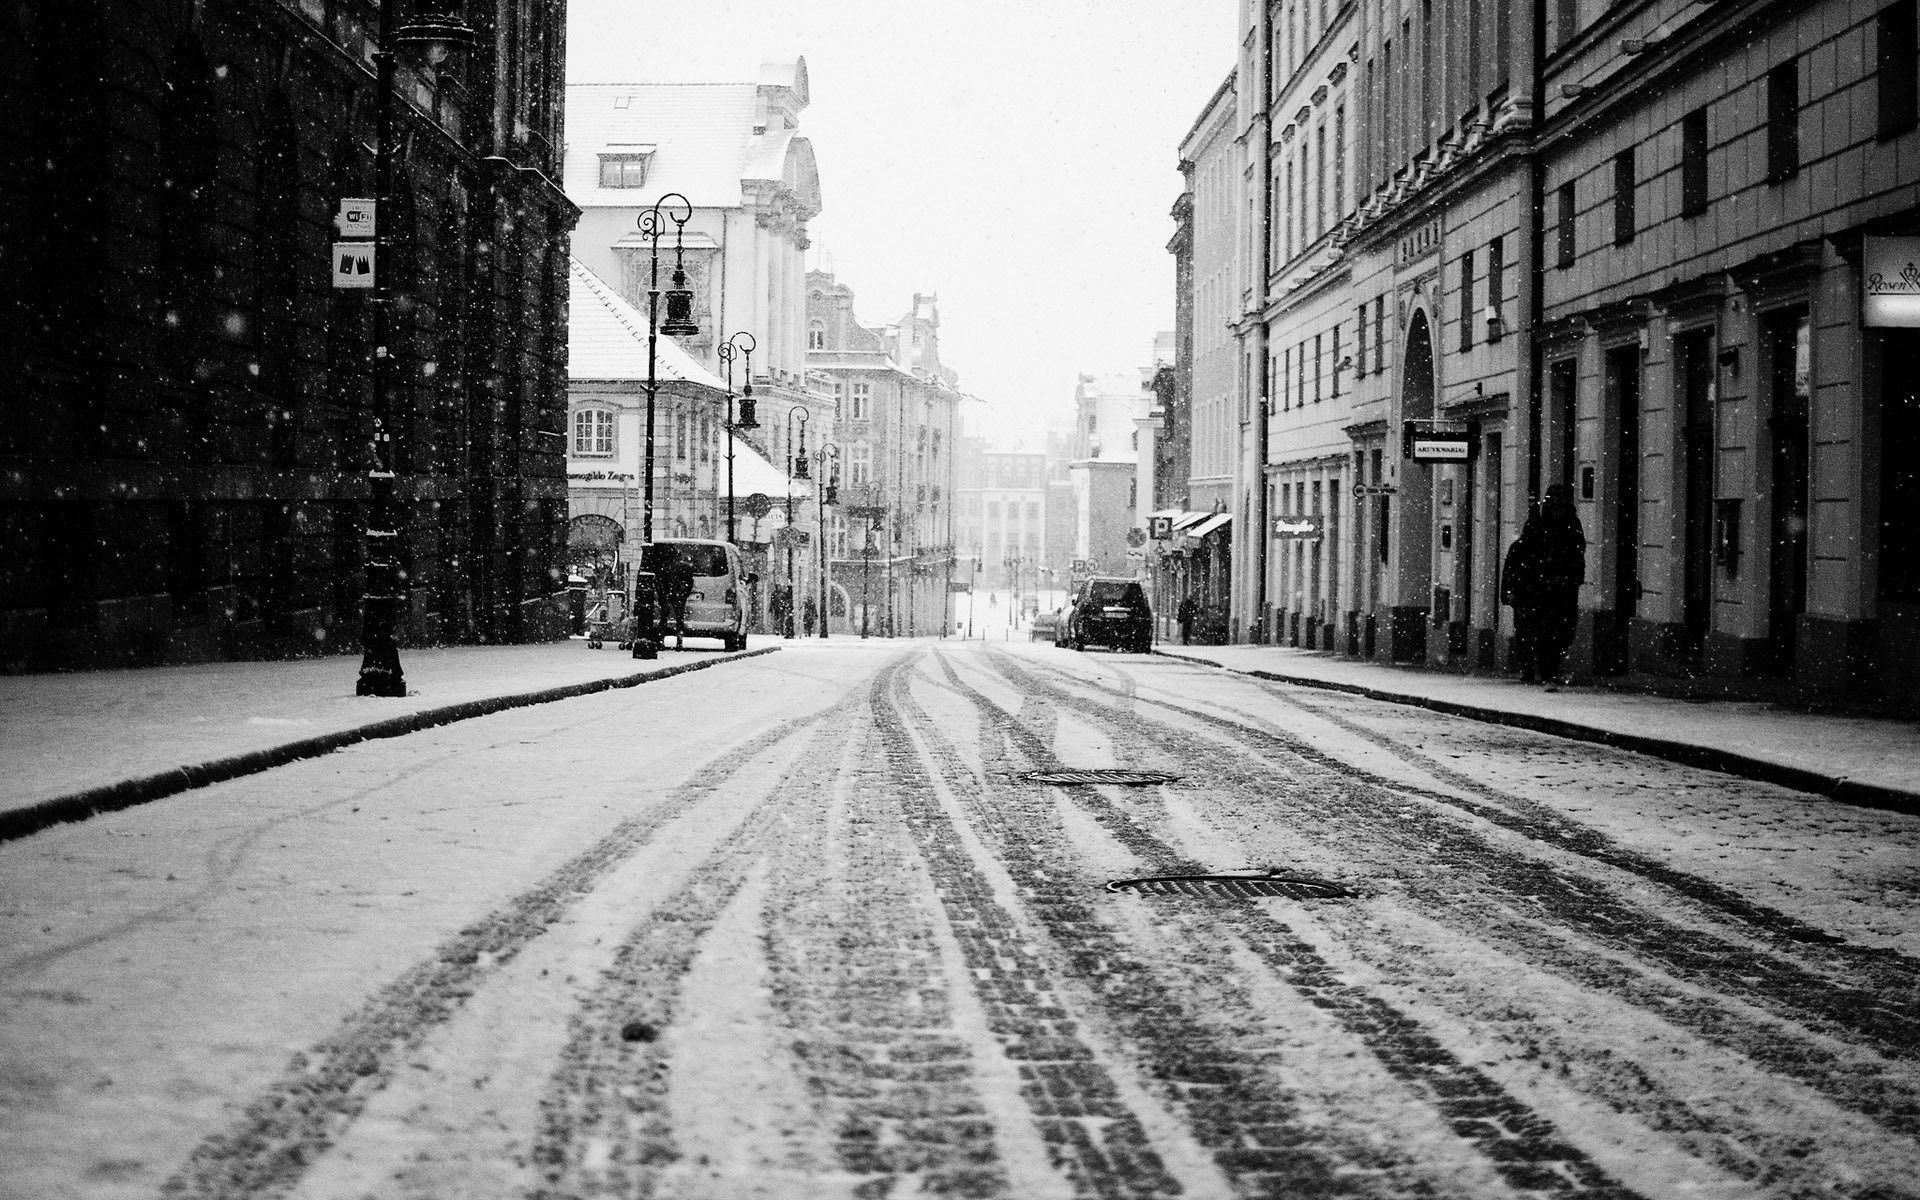 Black And White Winter Day In The City